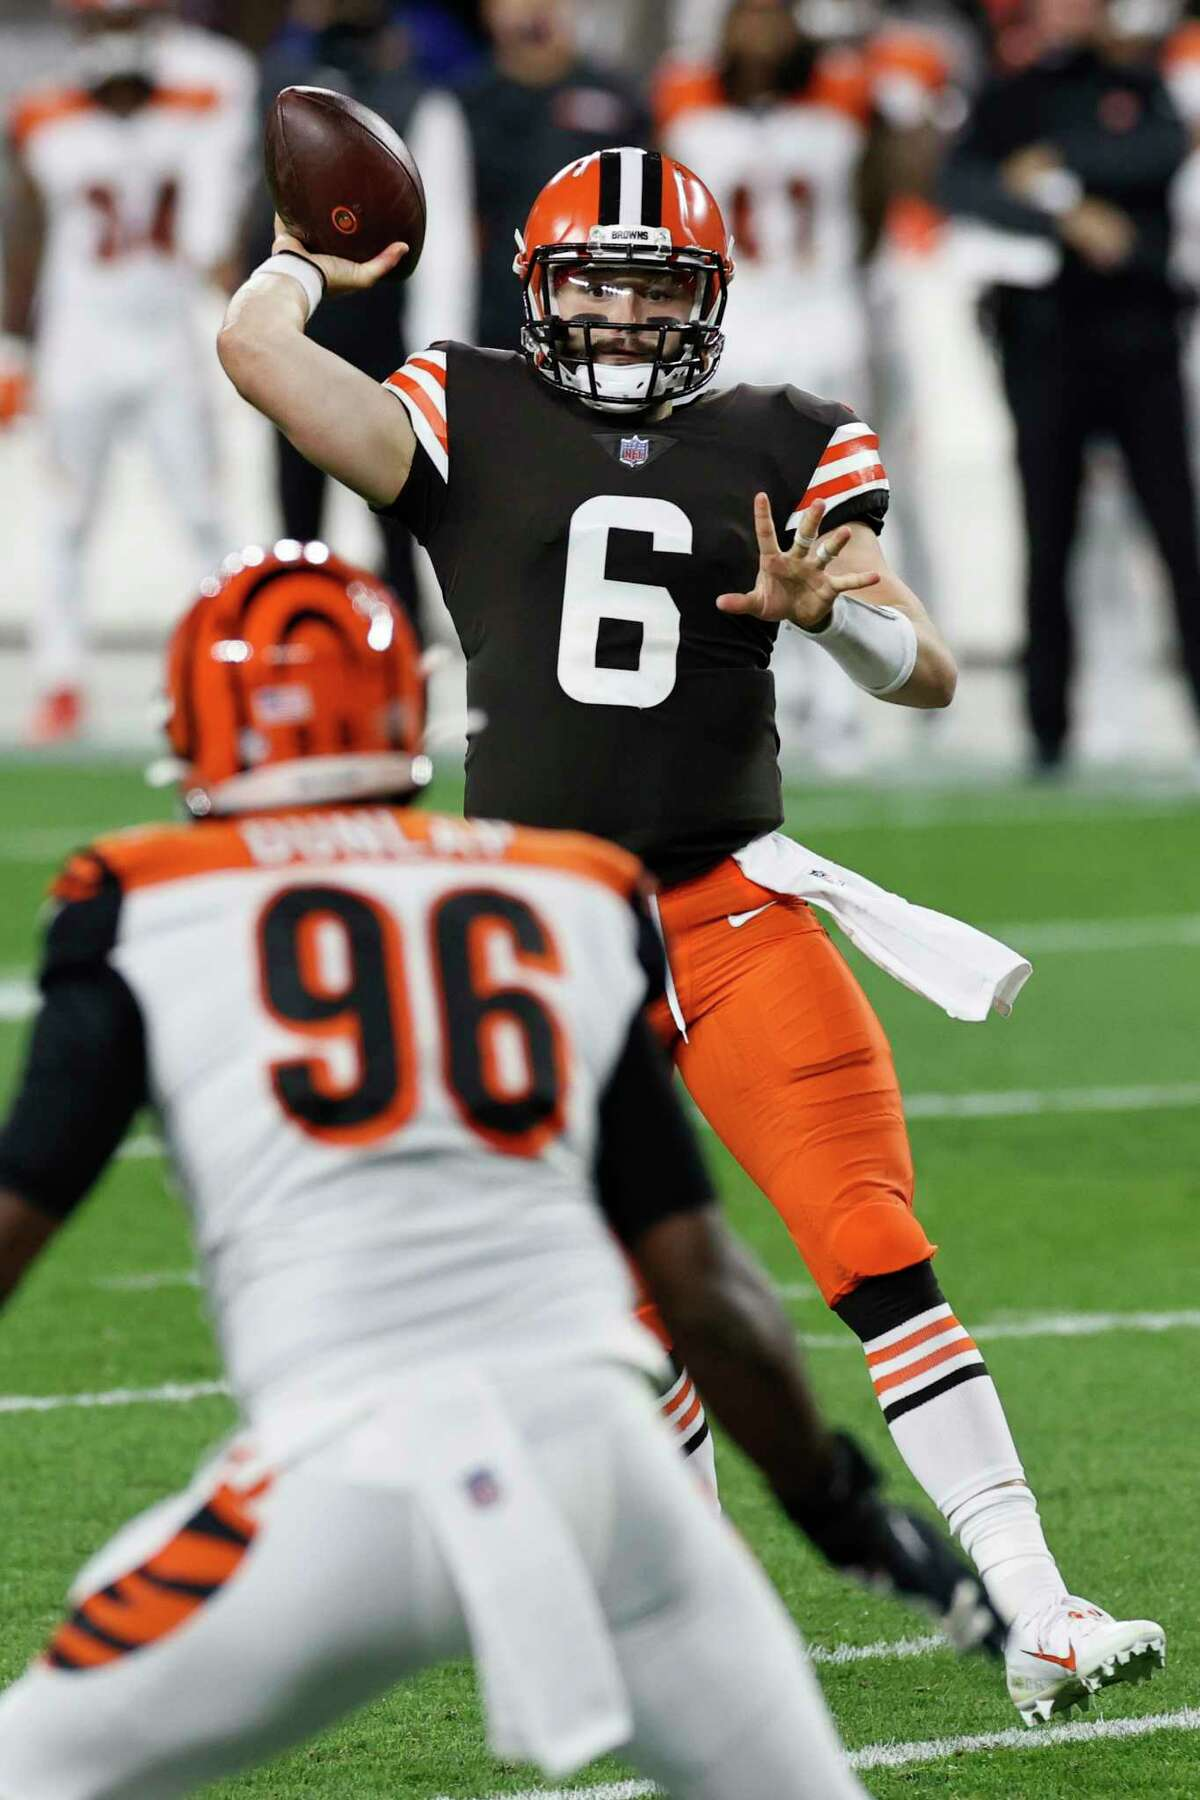 Cleveland Browns quarterback Baker Mayfield throws a 6-yard touchdown pass to running back Kareem Hunt during the first half of the team's NFL football game against the Cincinnati Bengals, Thursday, Sept. 17, 2020, in Cleveland. (AP Photo/Ron Schwane)